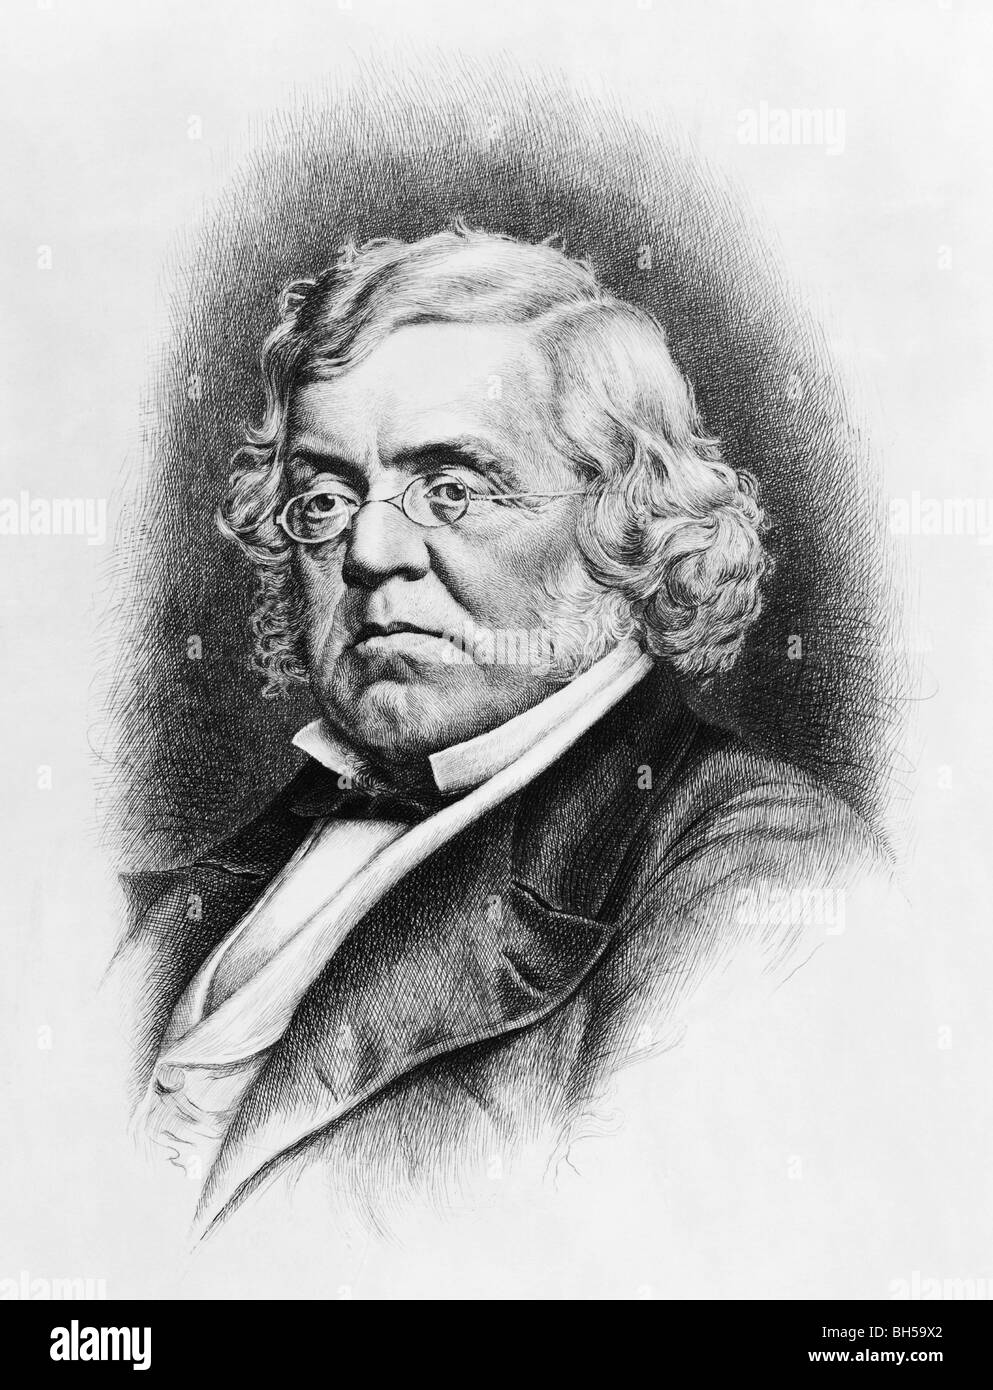 Portrait c1907 of author William Makepeace Thackeray (1811 - 1863) - the 19th century English novelist who wrote Stock Photo